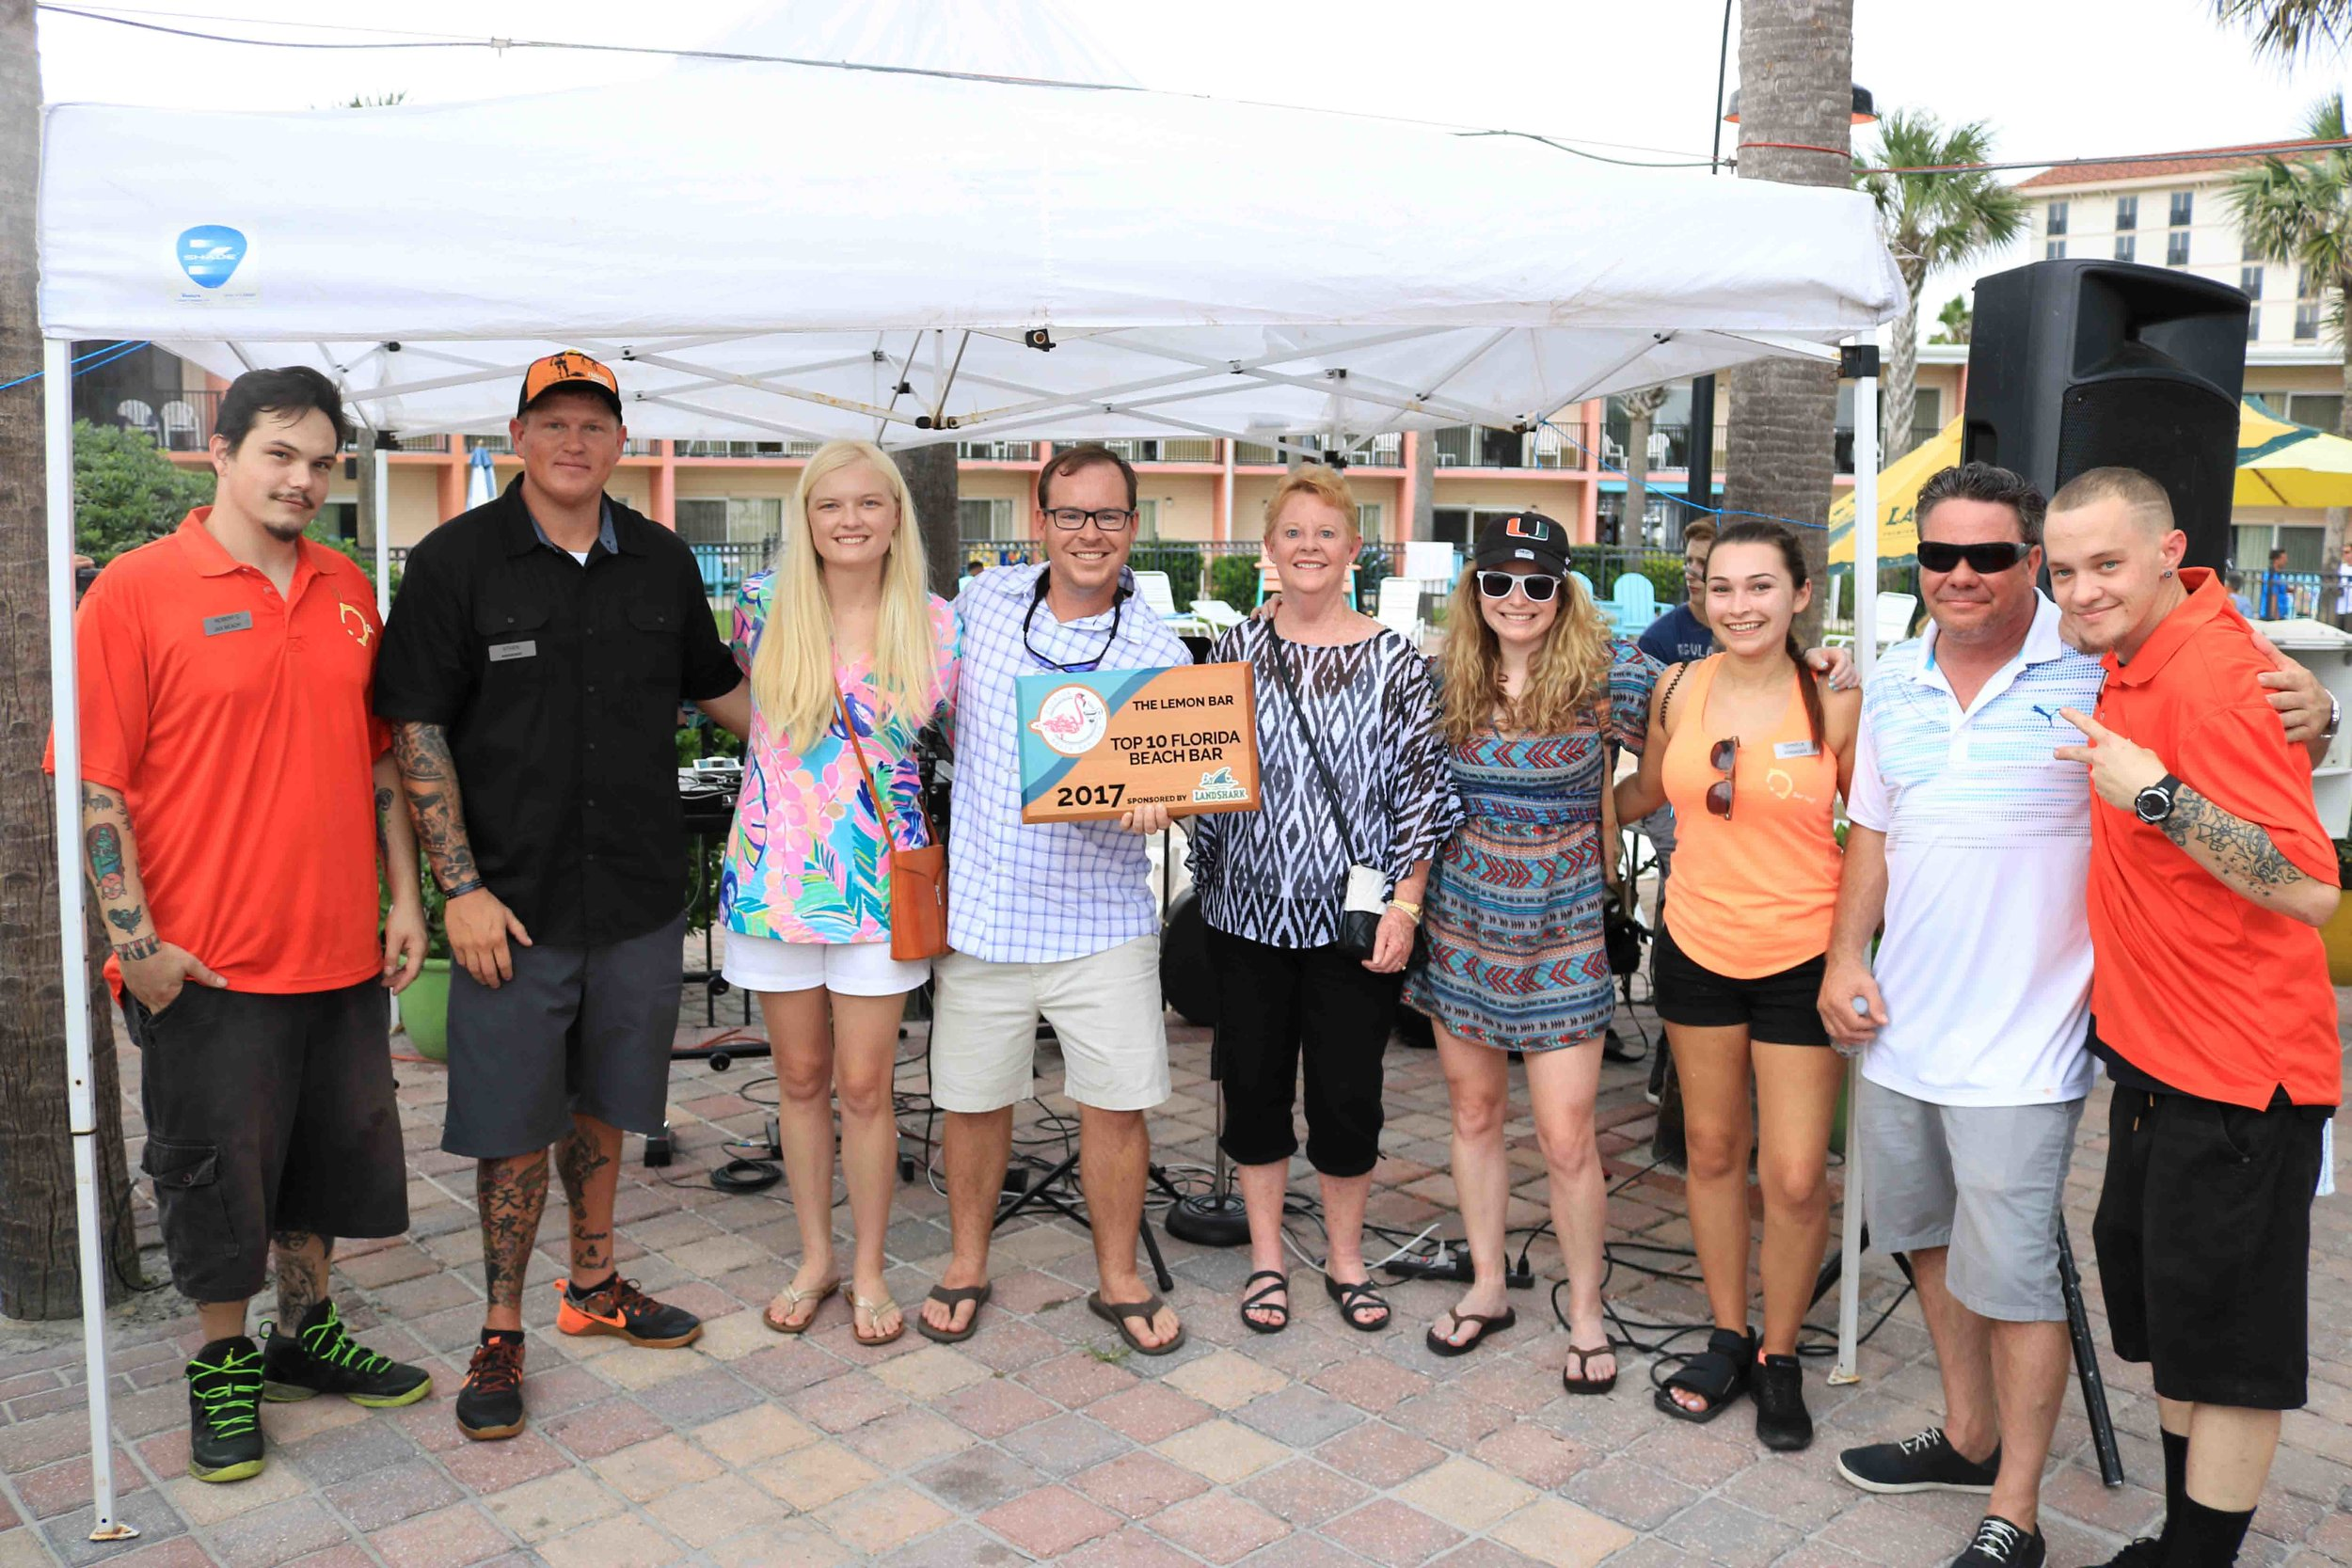 Some of the Lemon Bar staff poses for a picture with the 2017 Top 10 Florida Beach Bar award